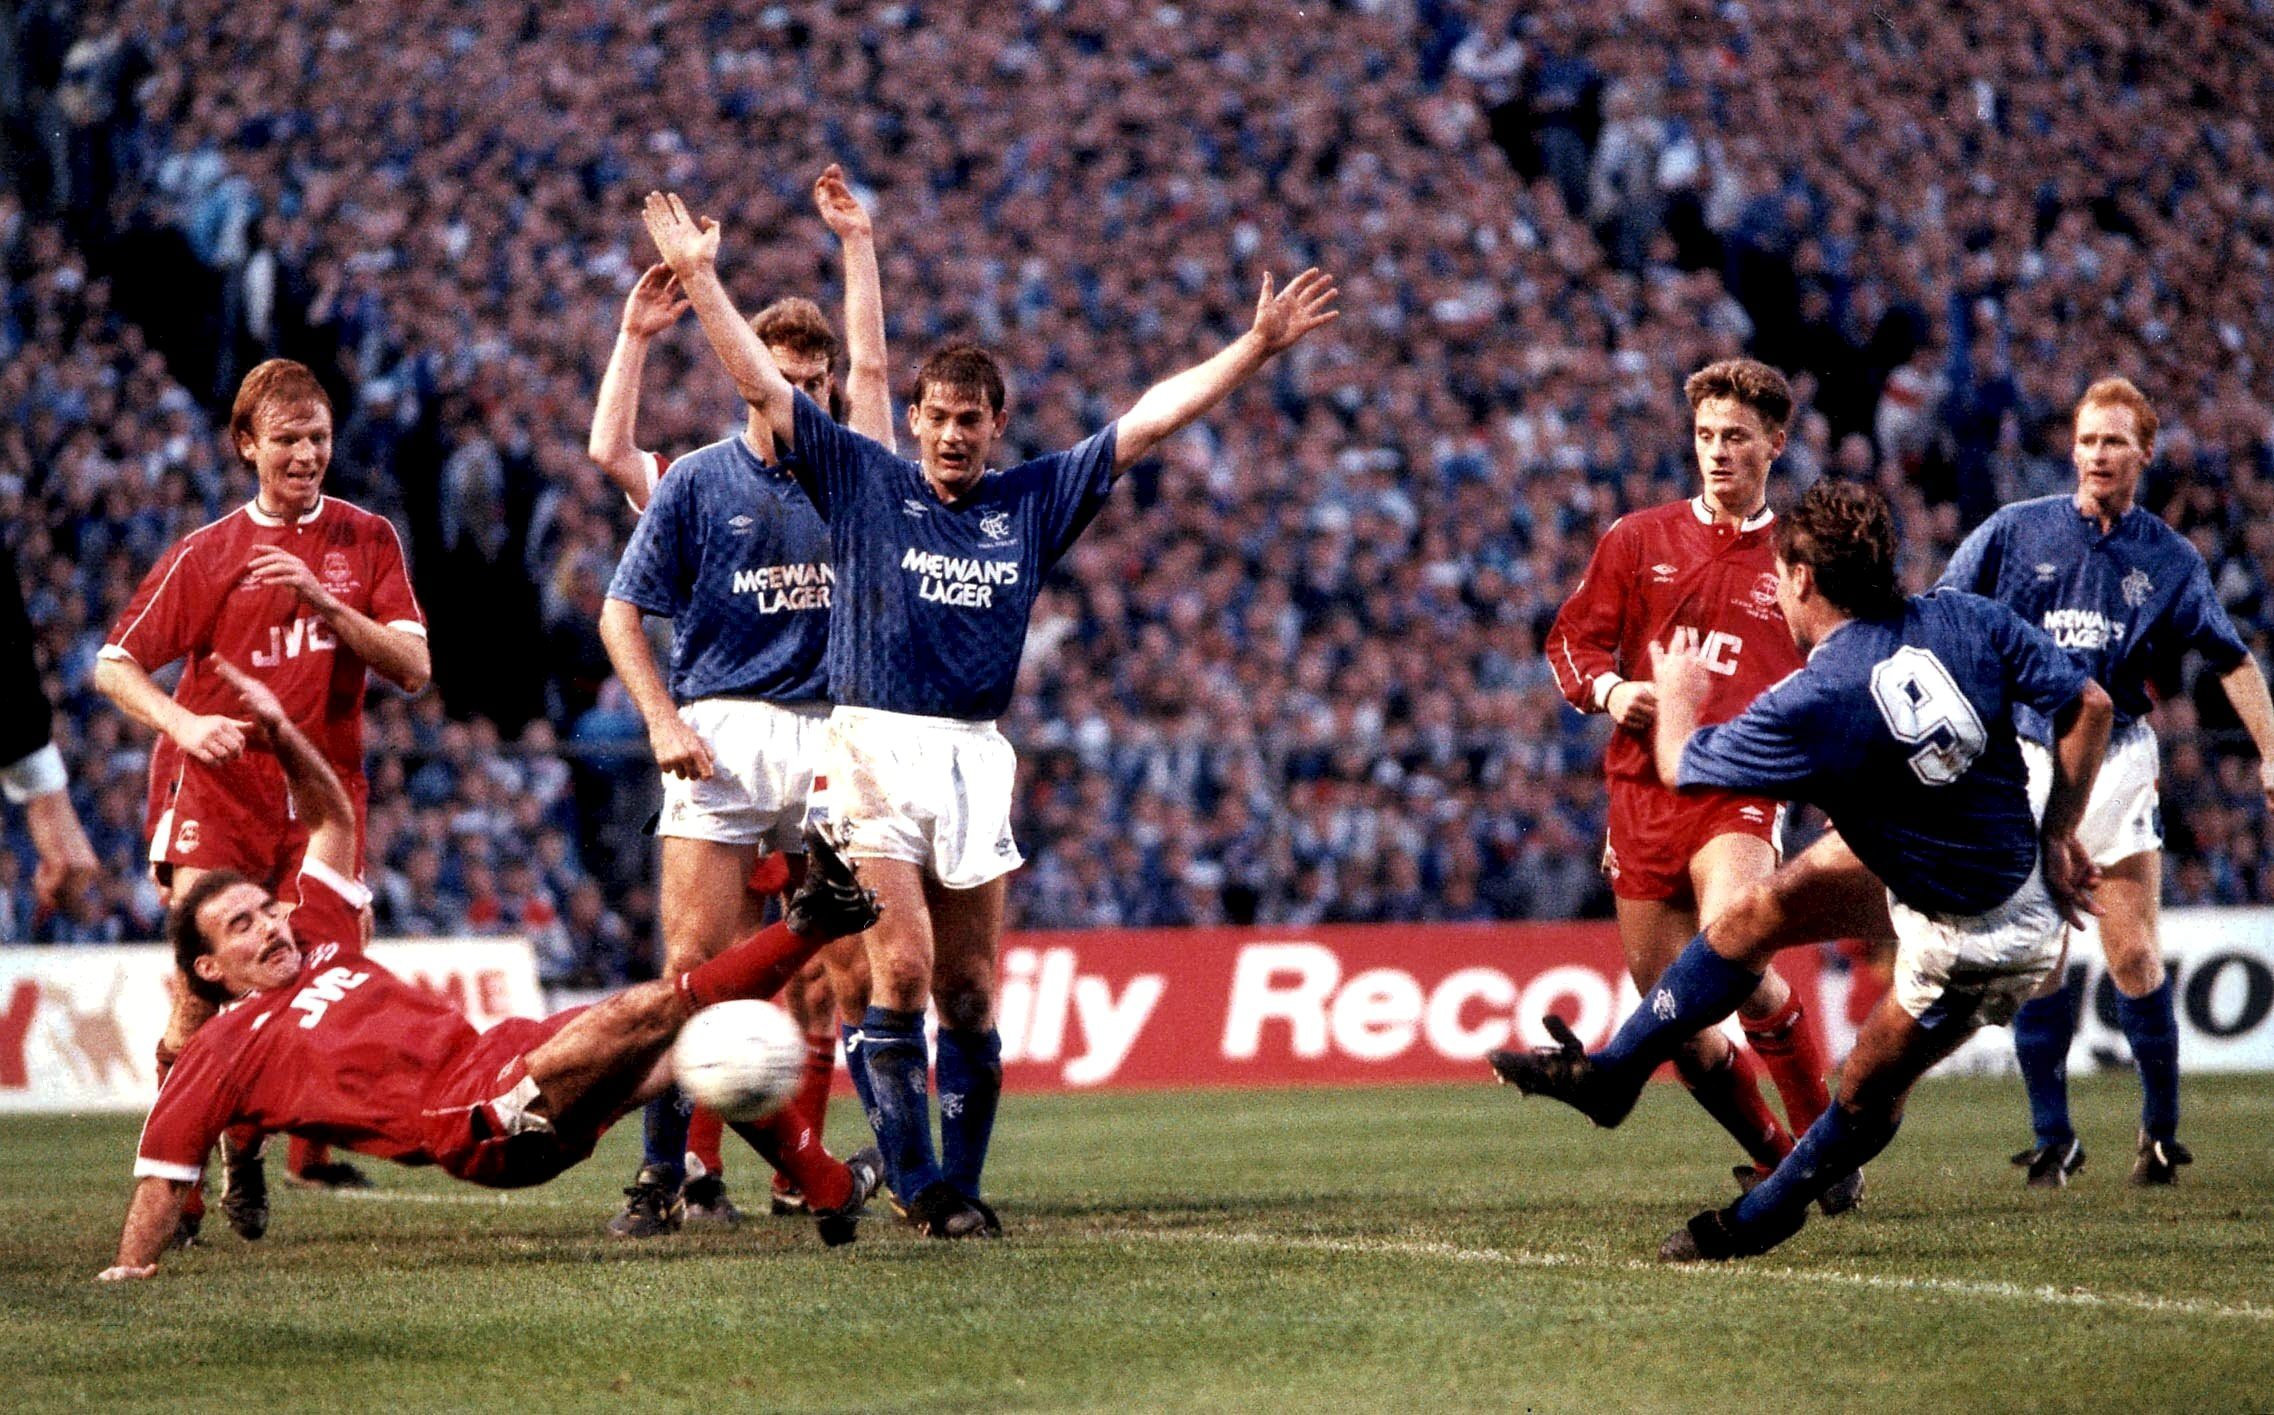 Ally McCoist fires home Rangers' winning goal in their 3-2 League Cup Final win over Aberdeen in 1988